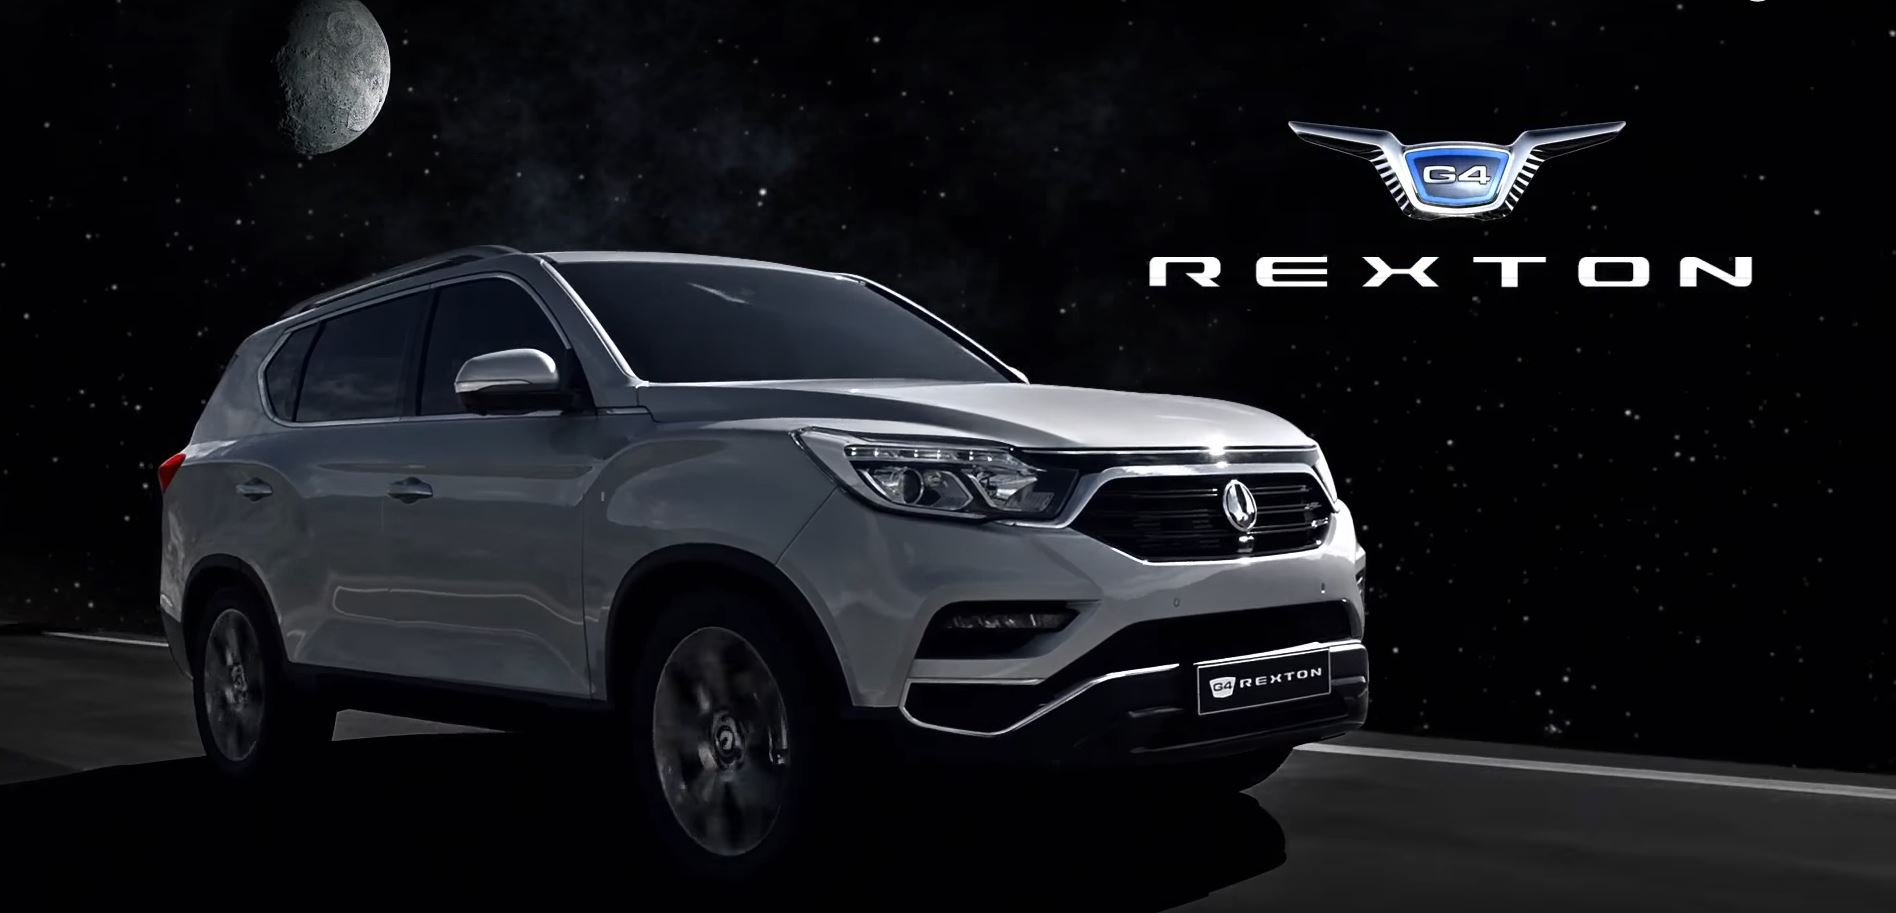 2017 SsangYong G4 Rexton Goes to the Moon, Does Cool ...